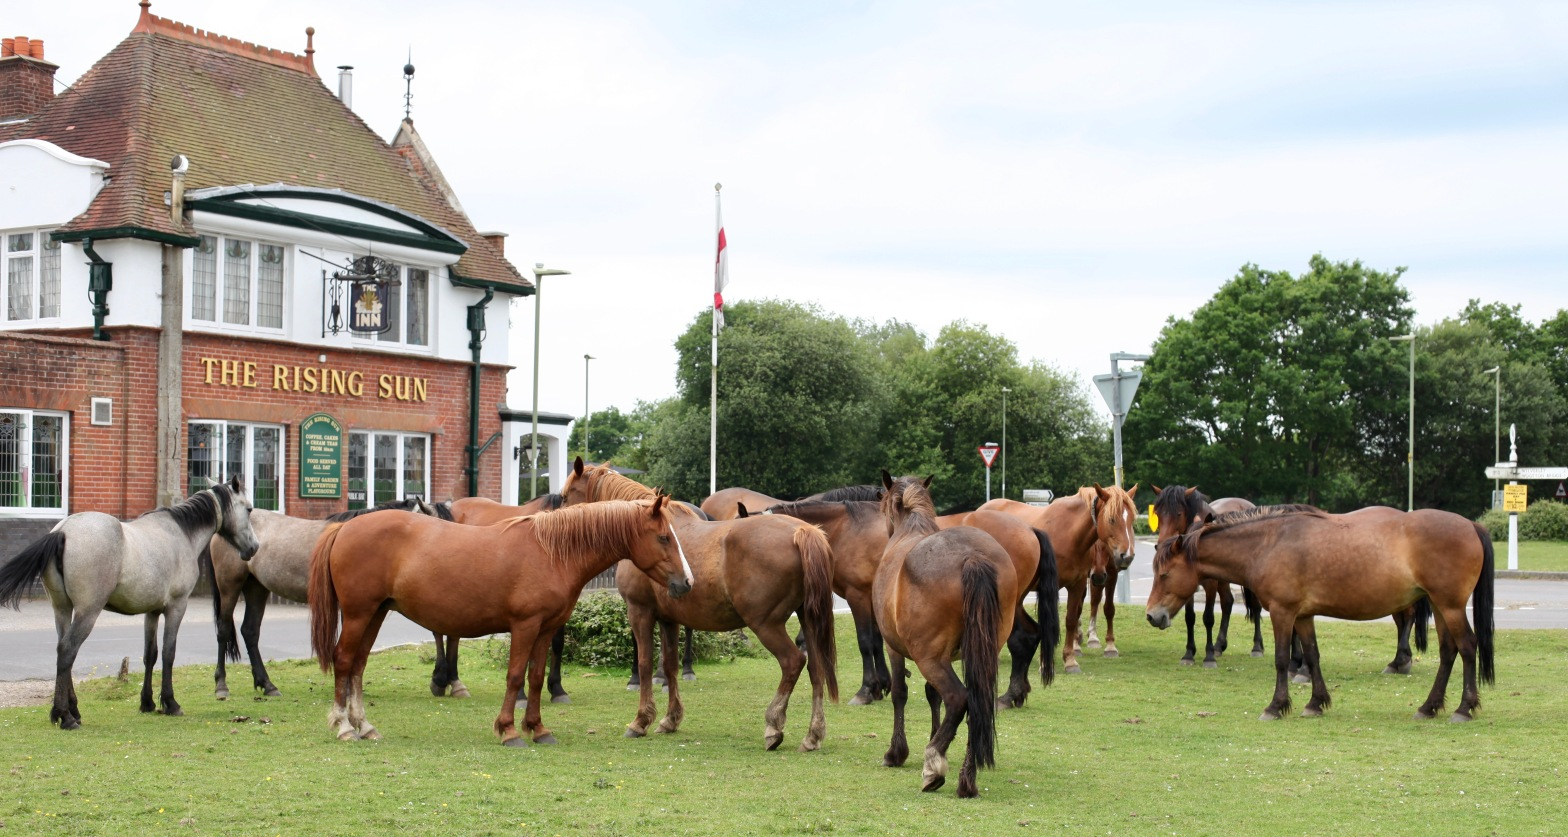 ponies outside The Rising Sun